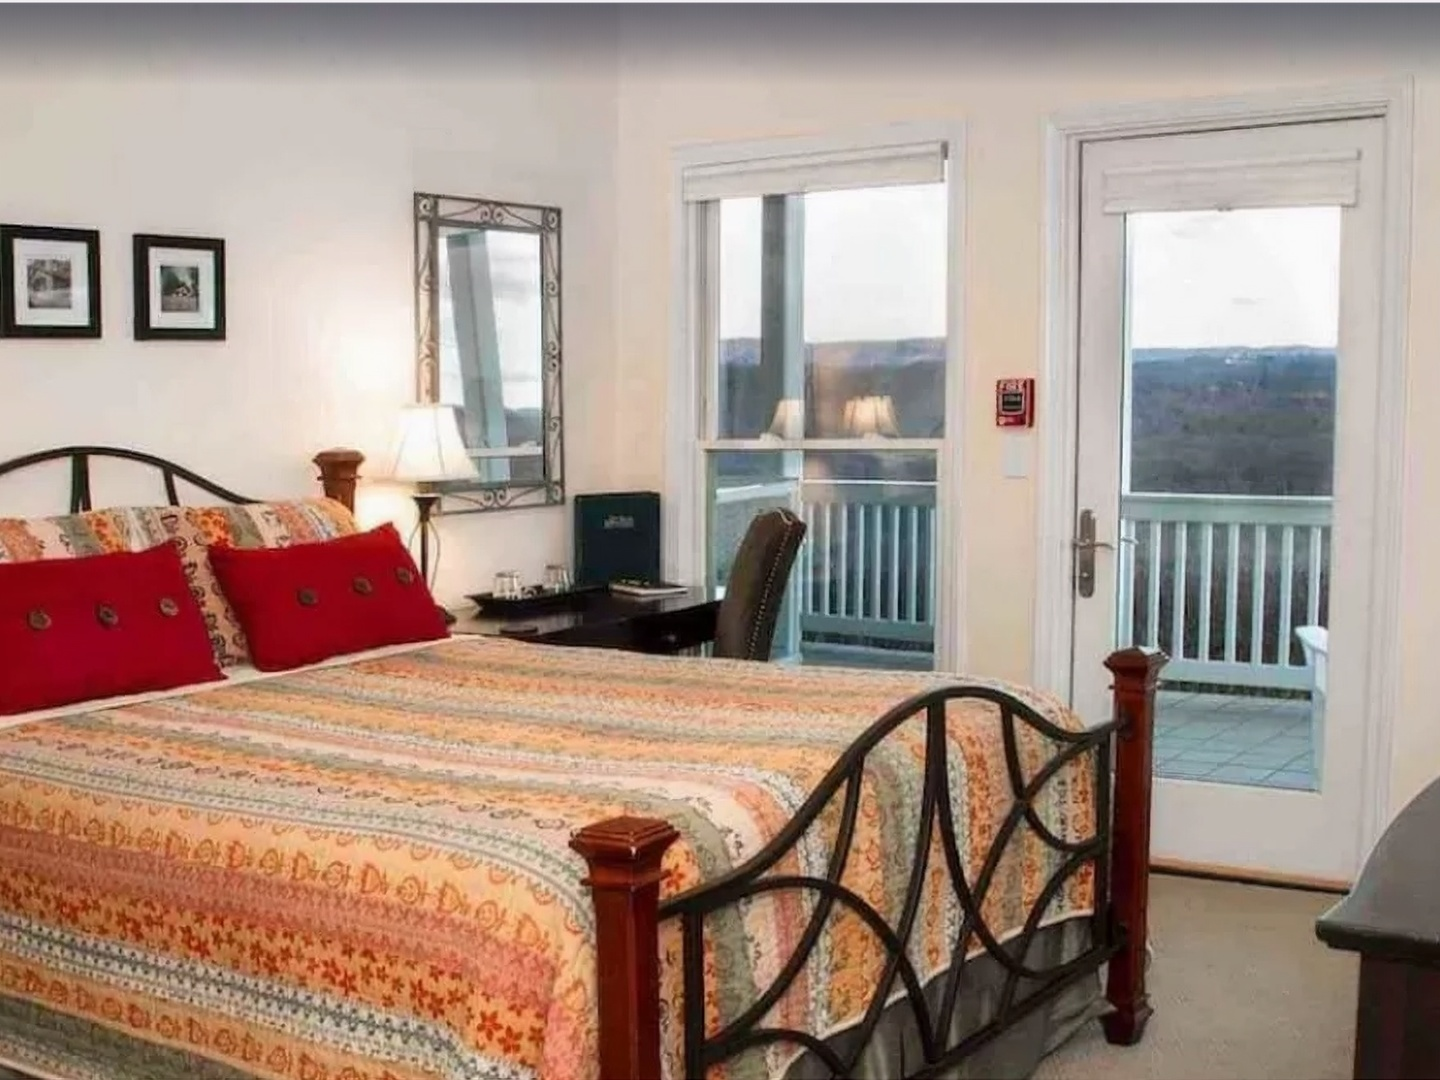 A bedroom with a bed and a chair in a room at Inn at Riverbend.